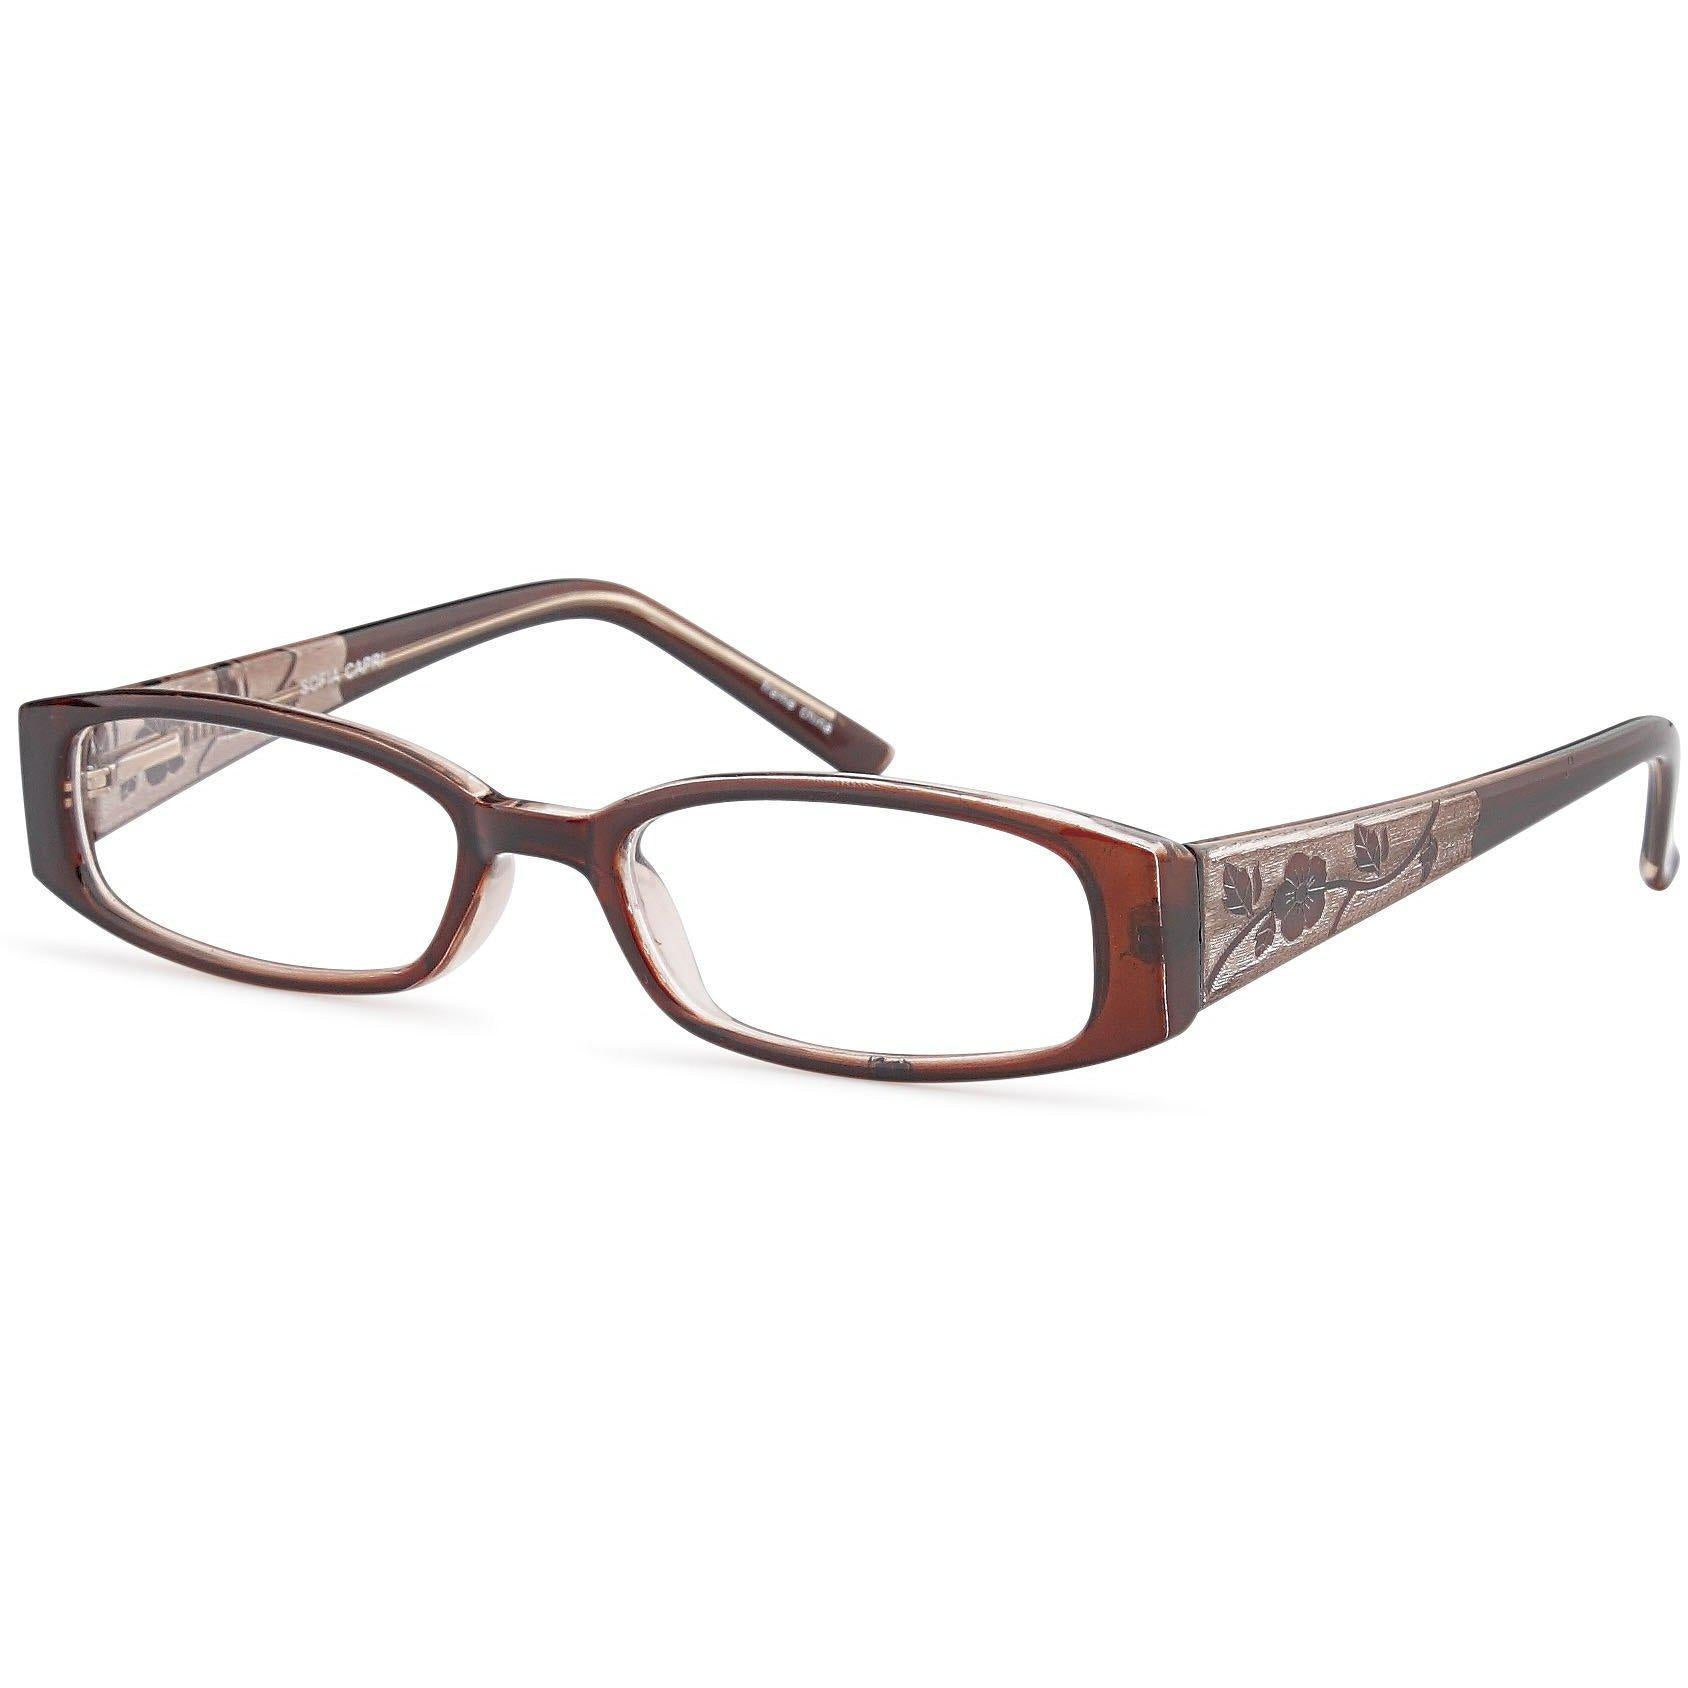 Everyday Prescription Glasses SOFIA Frame